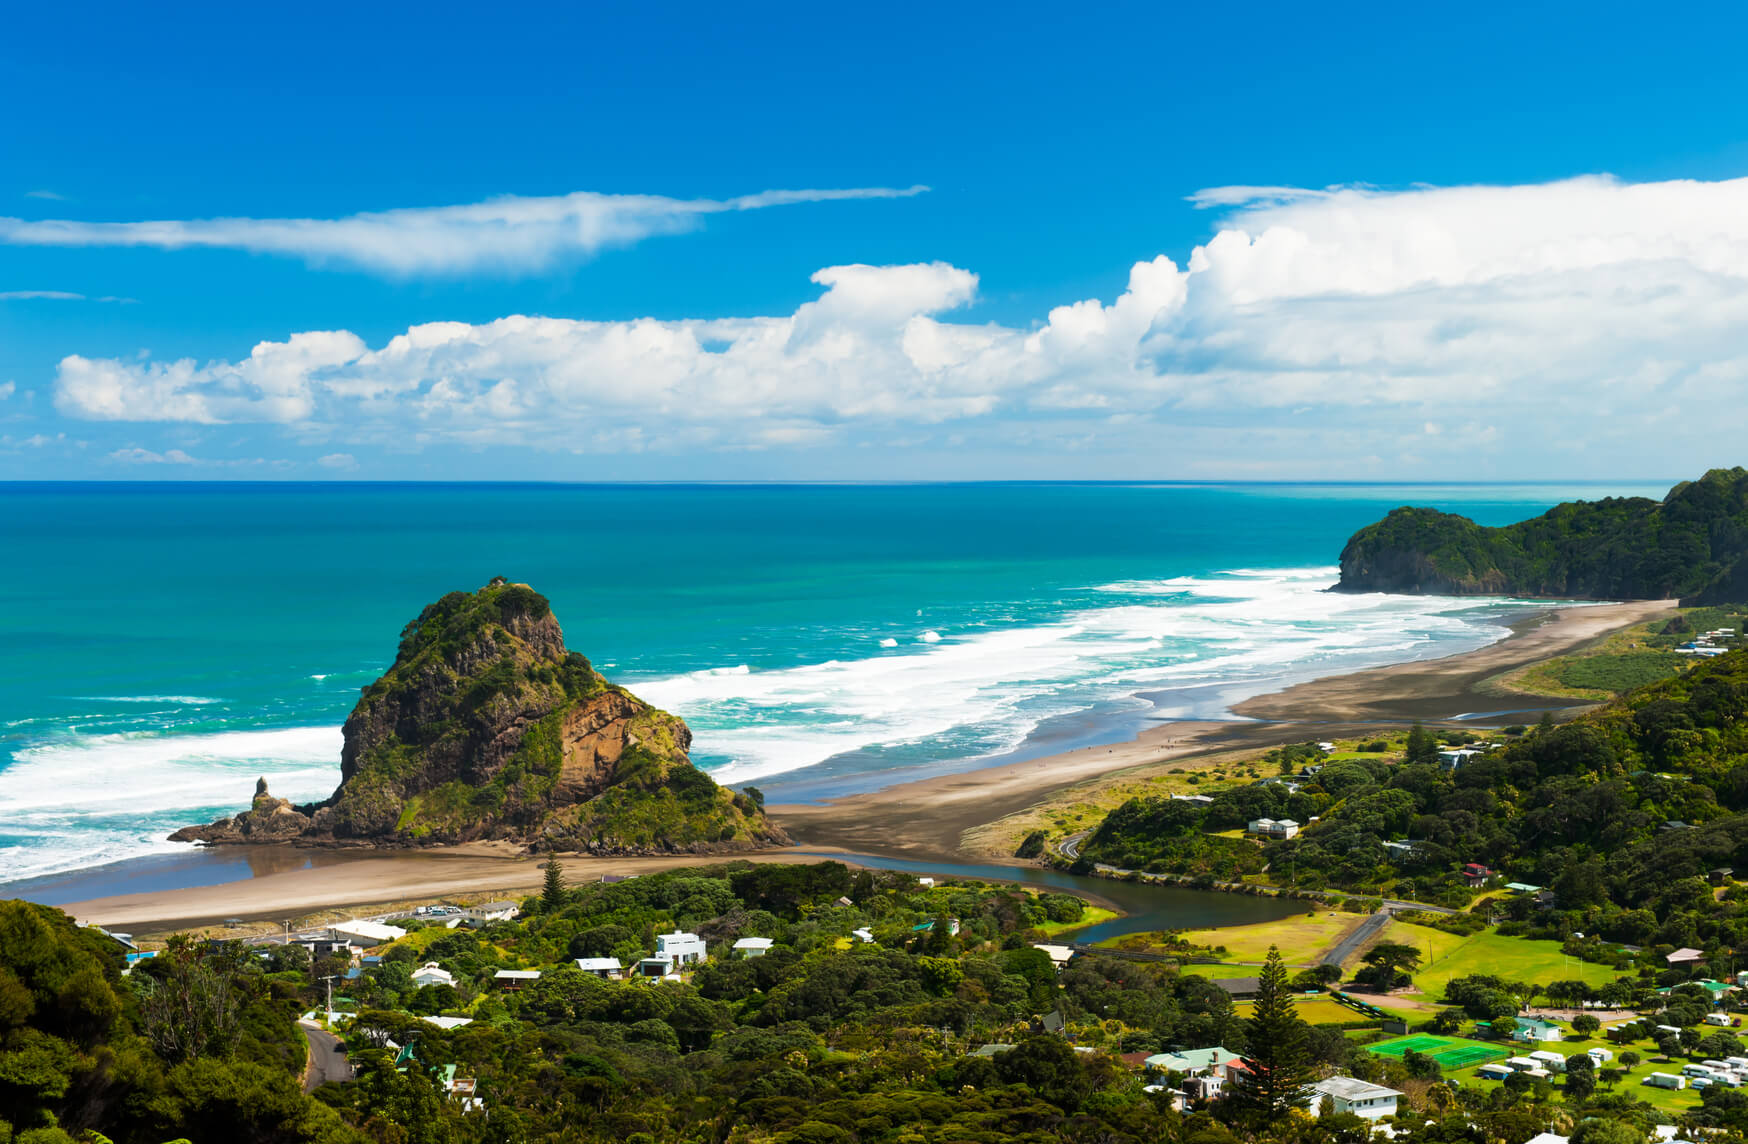 San Francisco to Auckland, New Zealand for only $619 roundtrip